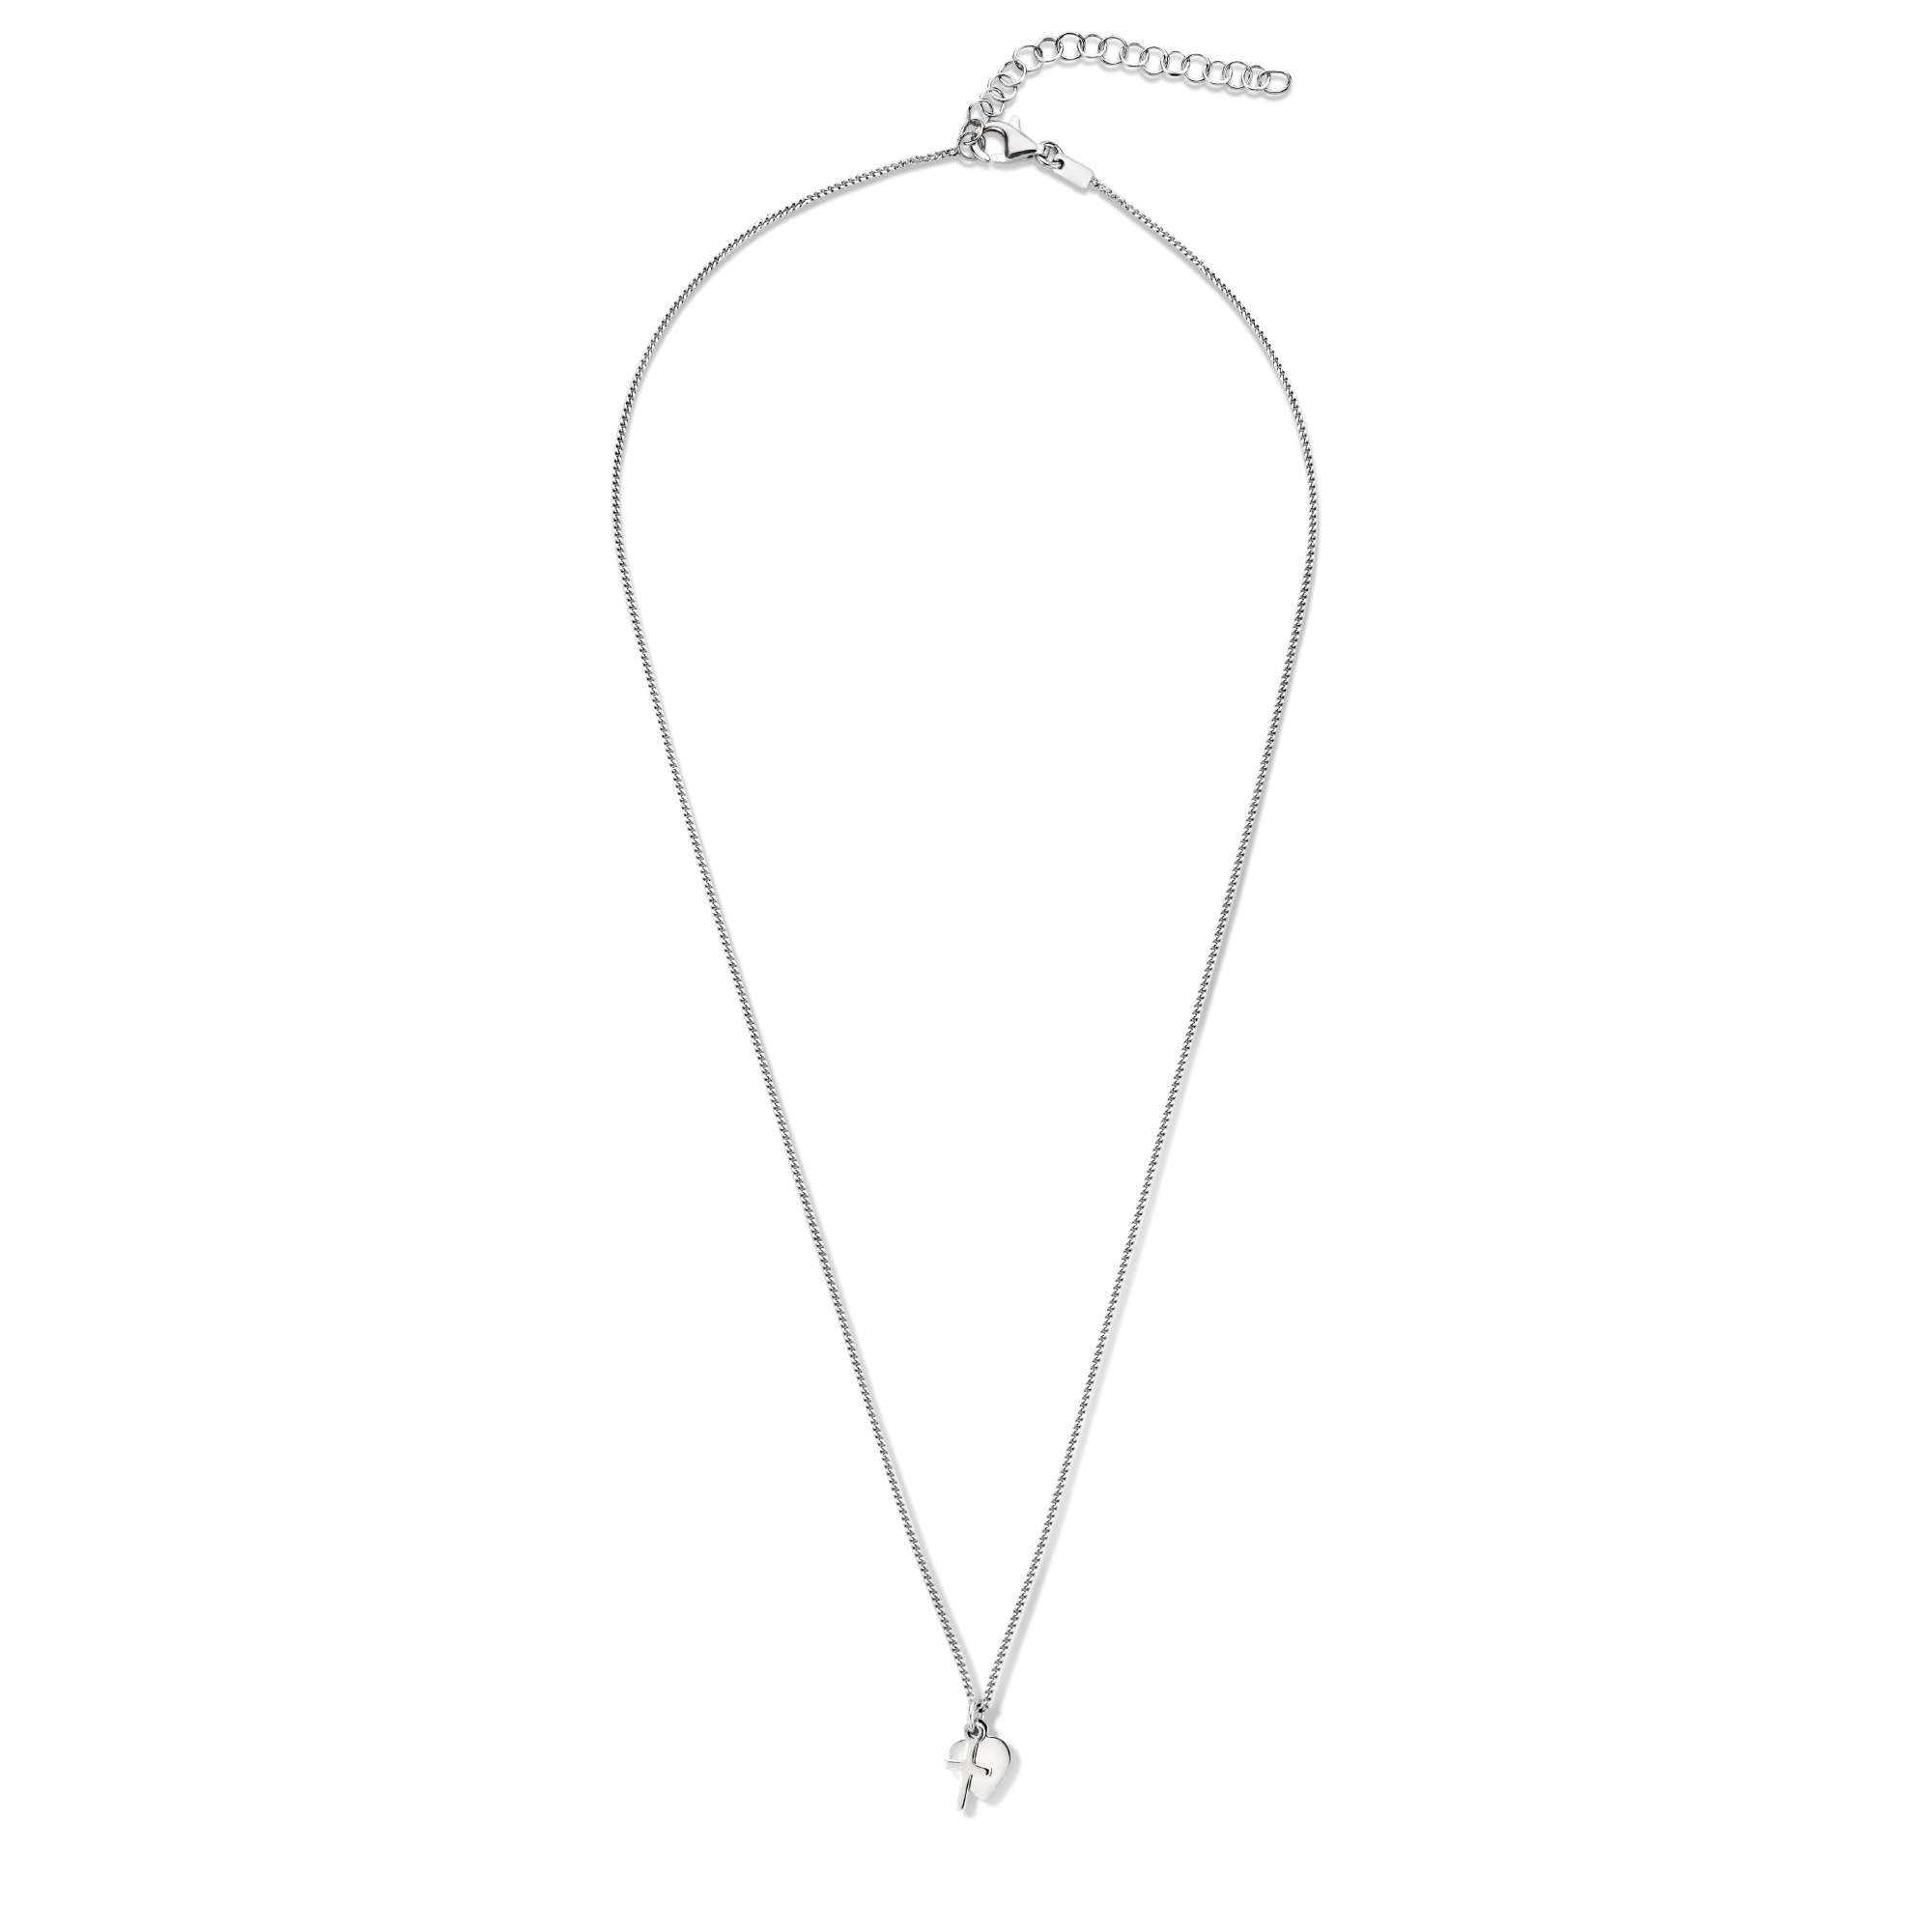 Selected Jewels Julie Théa 925 sterling silver necklace with heart and cross